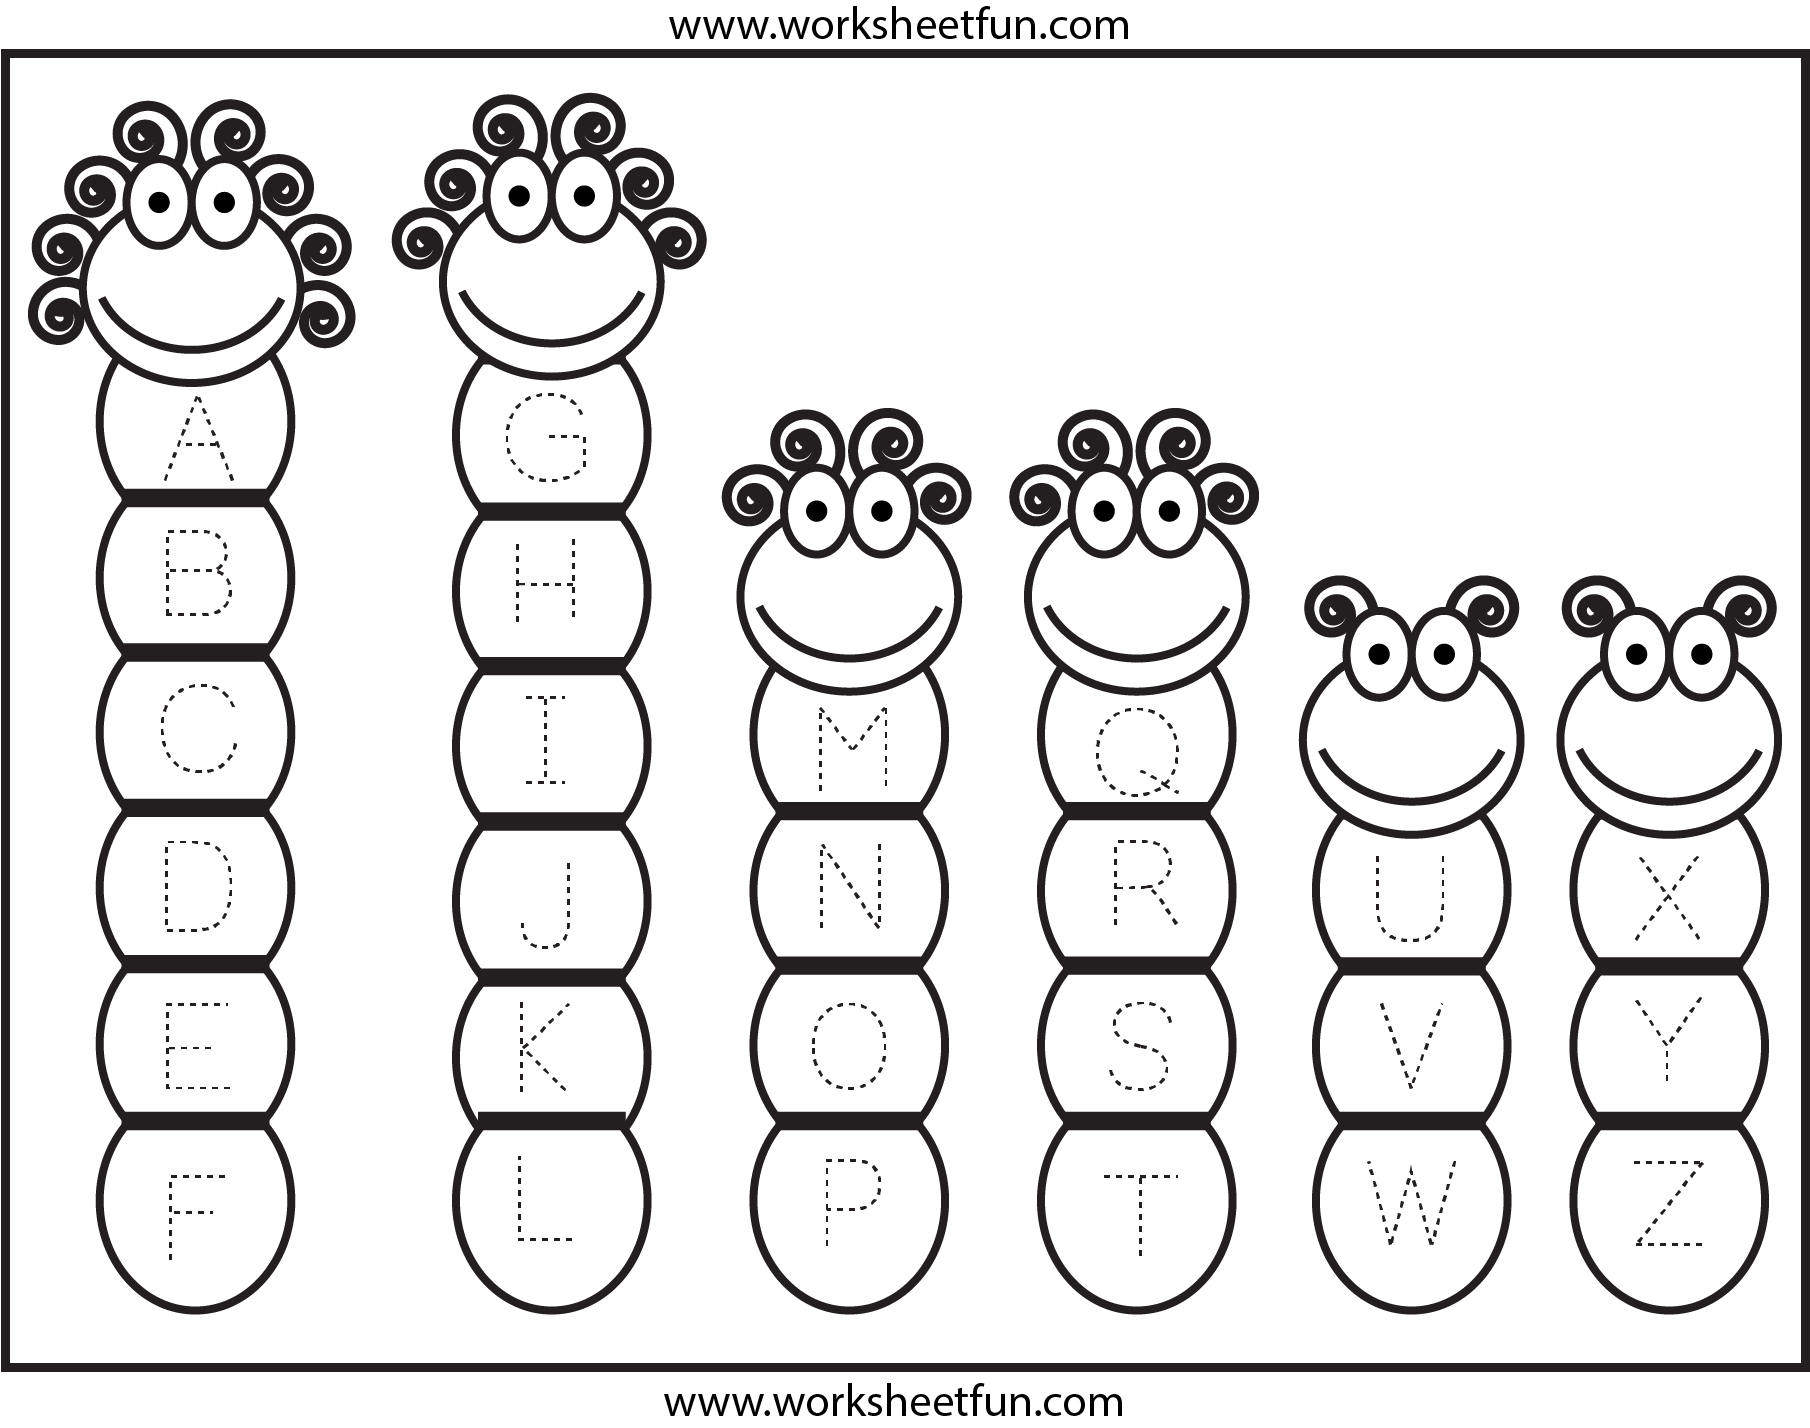 Tracing Uppercase Letters Capital Letters Free Printable Worksheets Worksheetfun